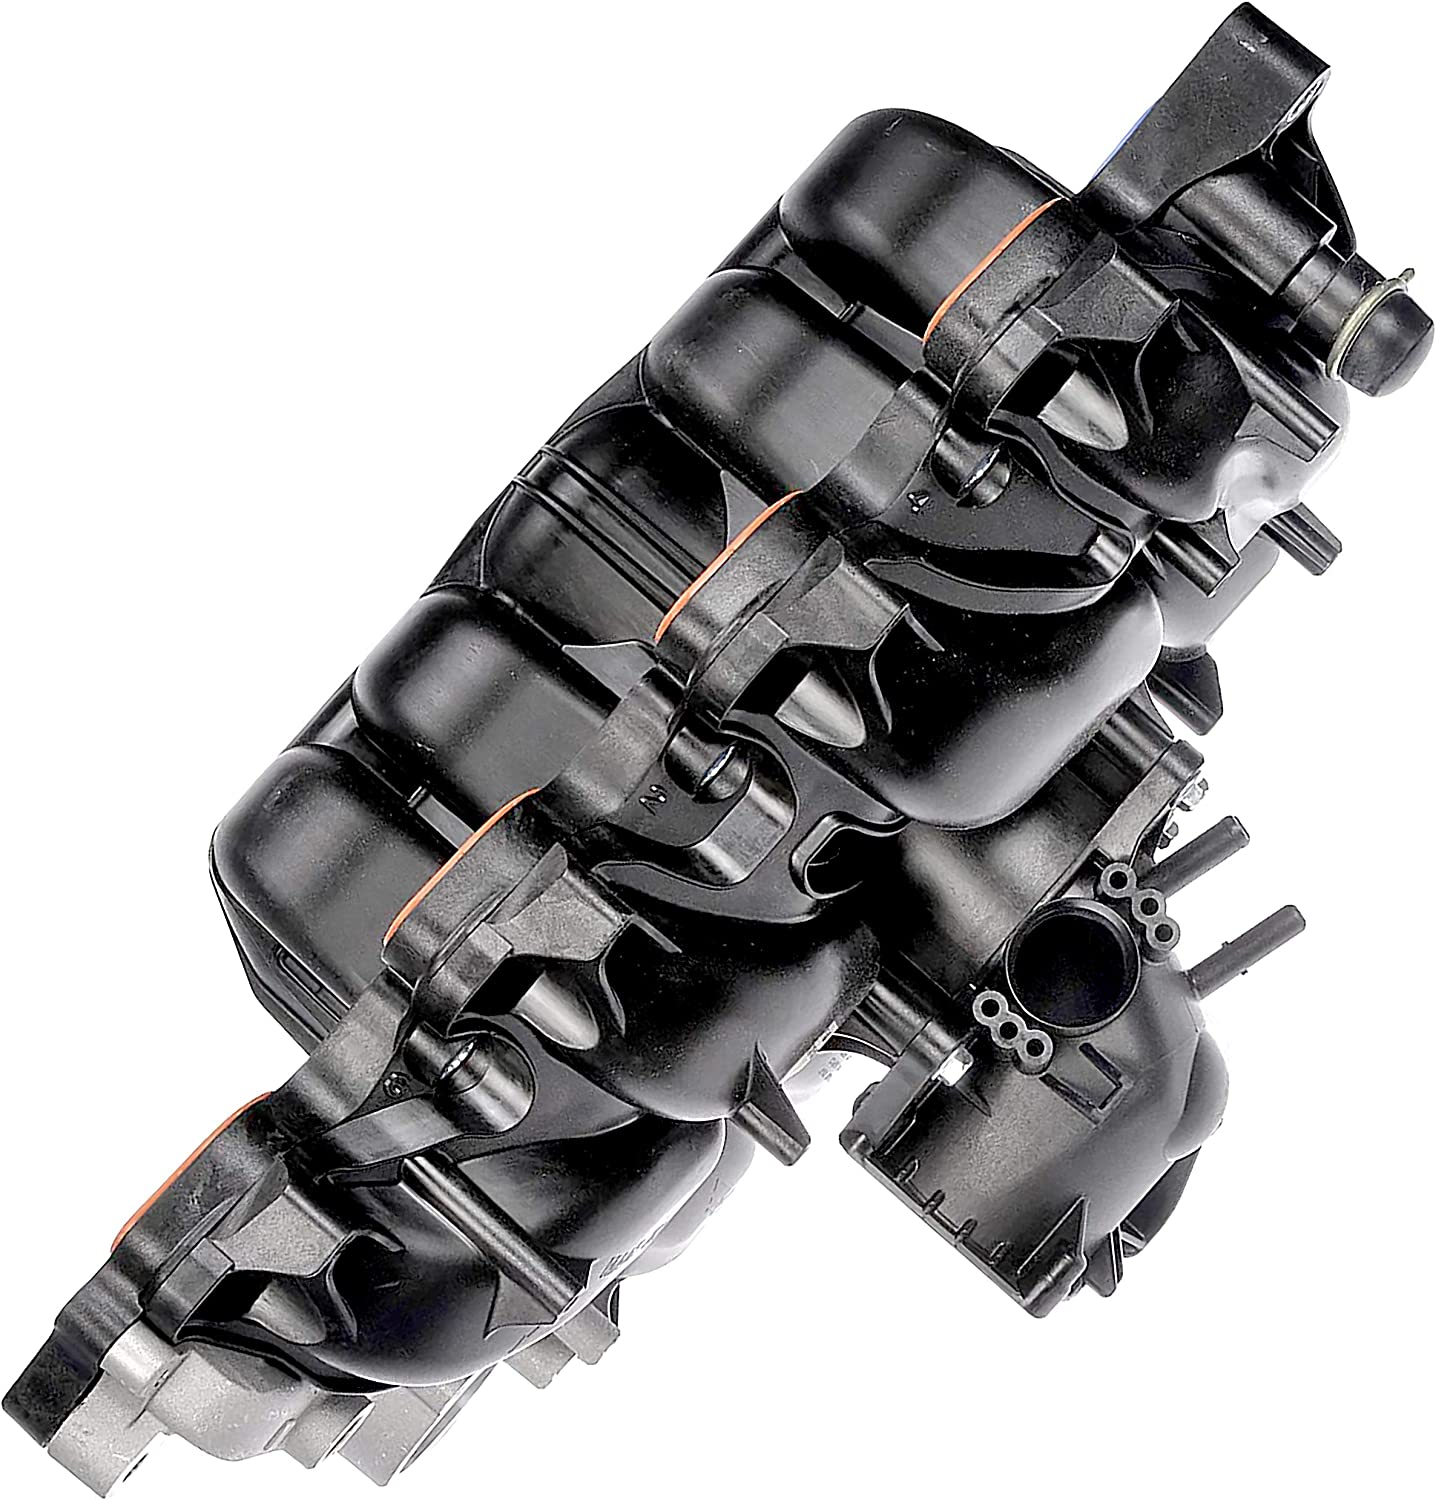 APDTY 726486 Upper Intake Manifold Body Manufacturer direct delivery Molded Throttle Washington Mall Rep With